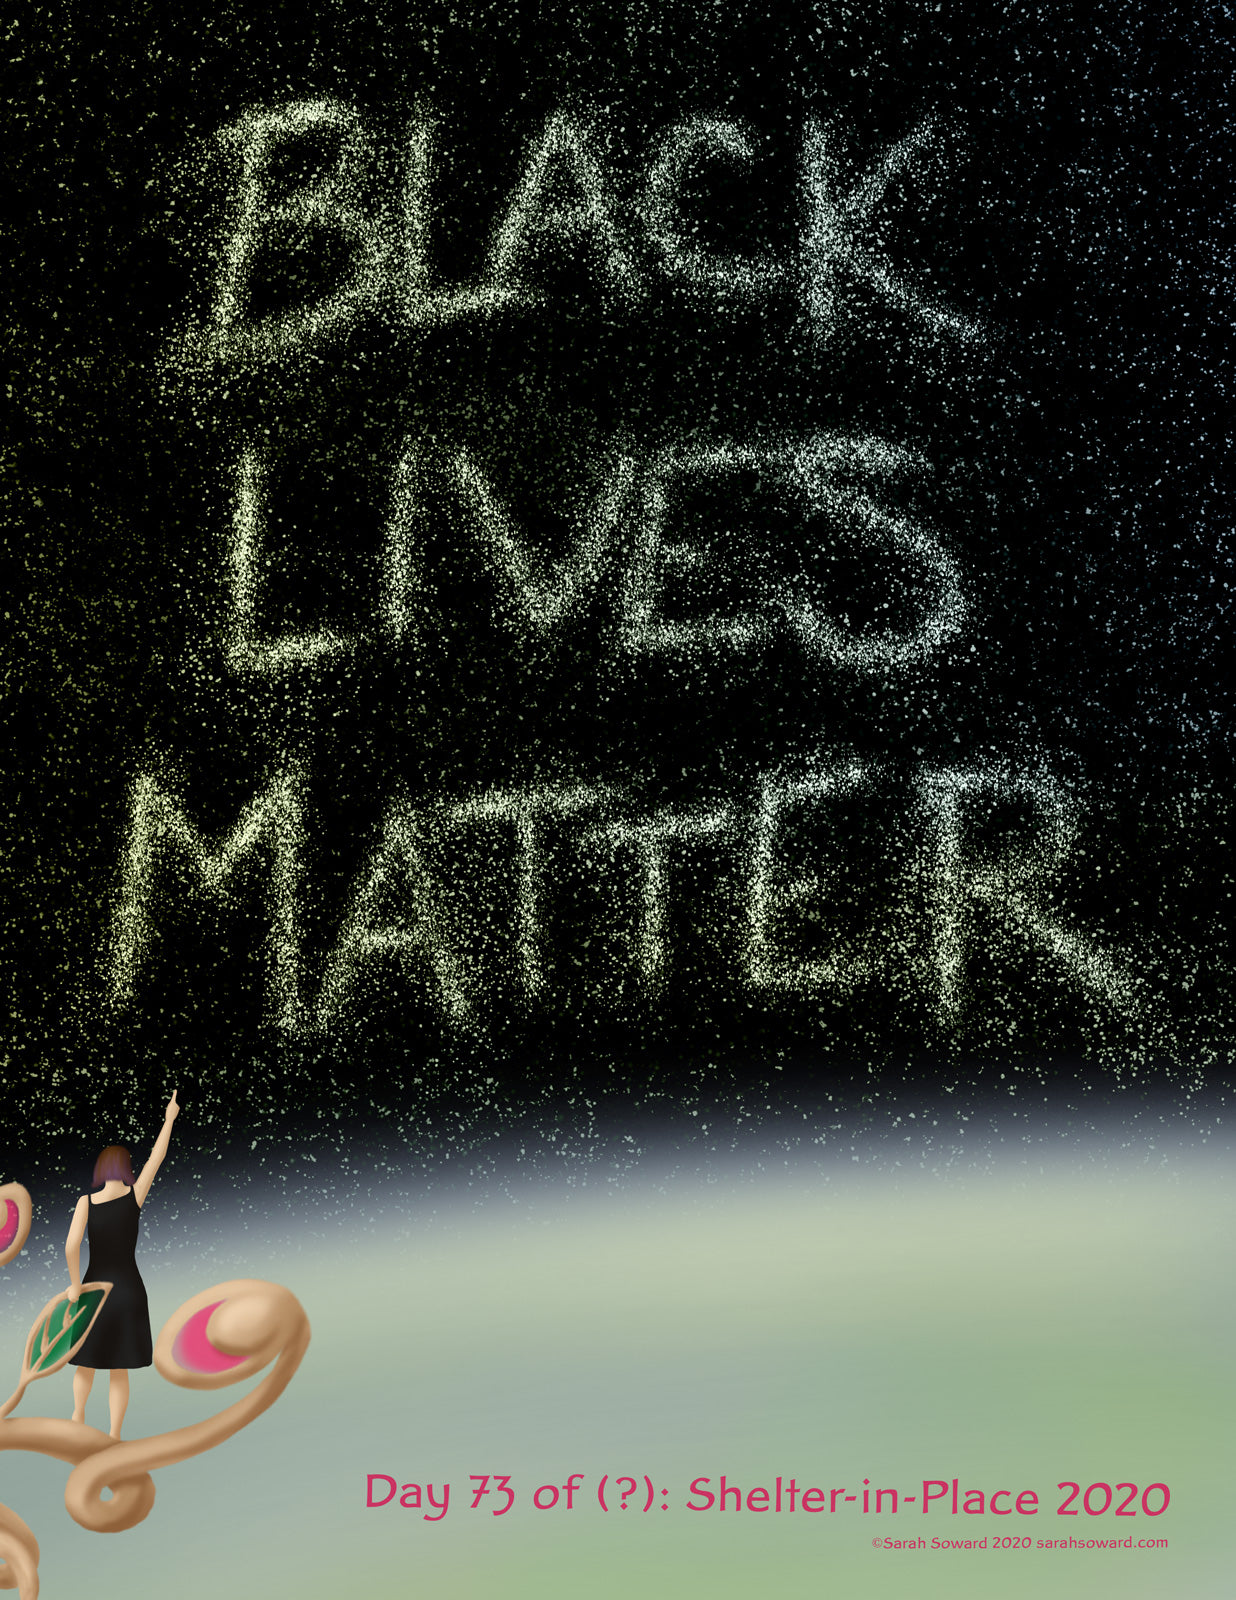 The text reads, BLACK LIVES MATTER. Yeah, there's a woman the foreground pointing at the words written with stars in the night sky. But this is bigger than her. BLACK LIVES MATTER.